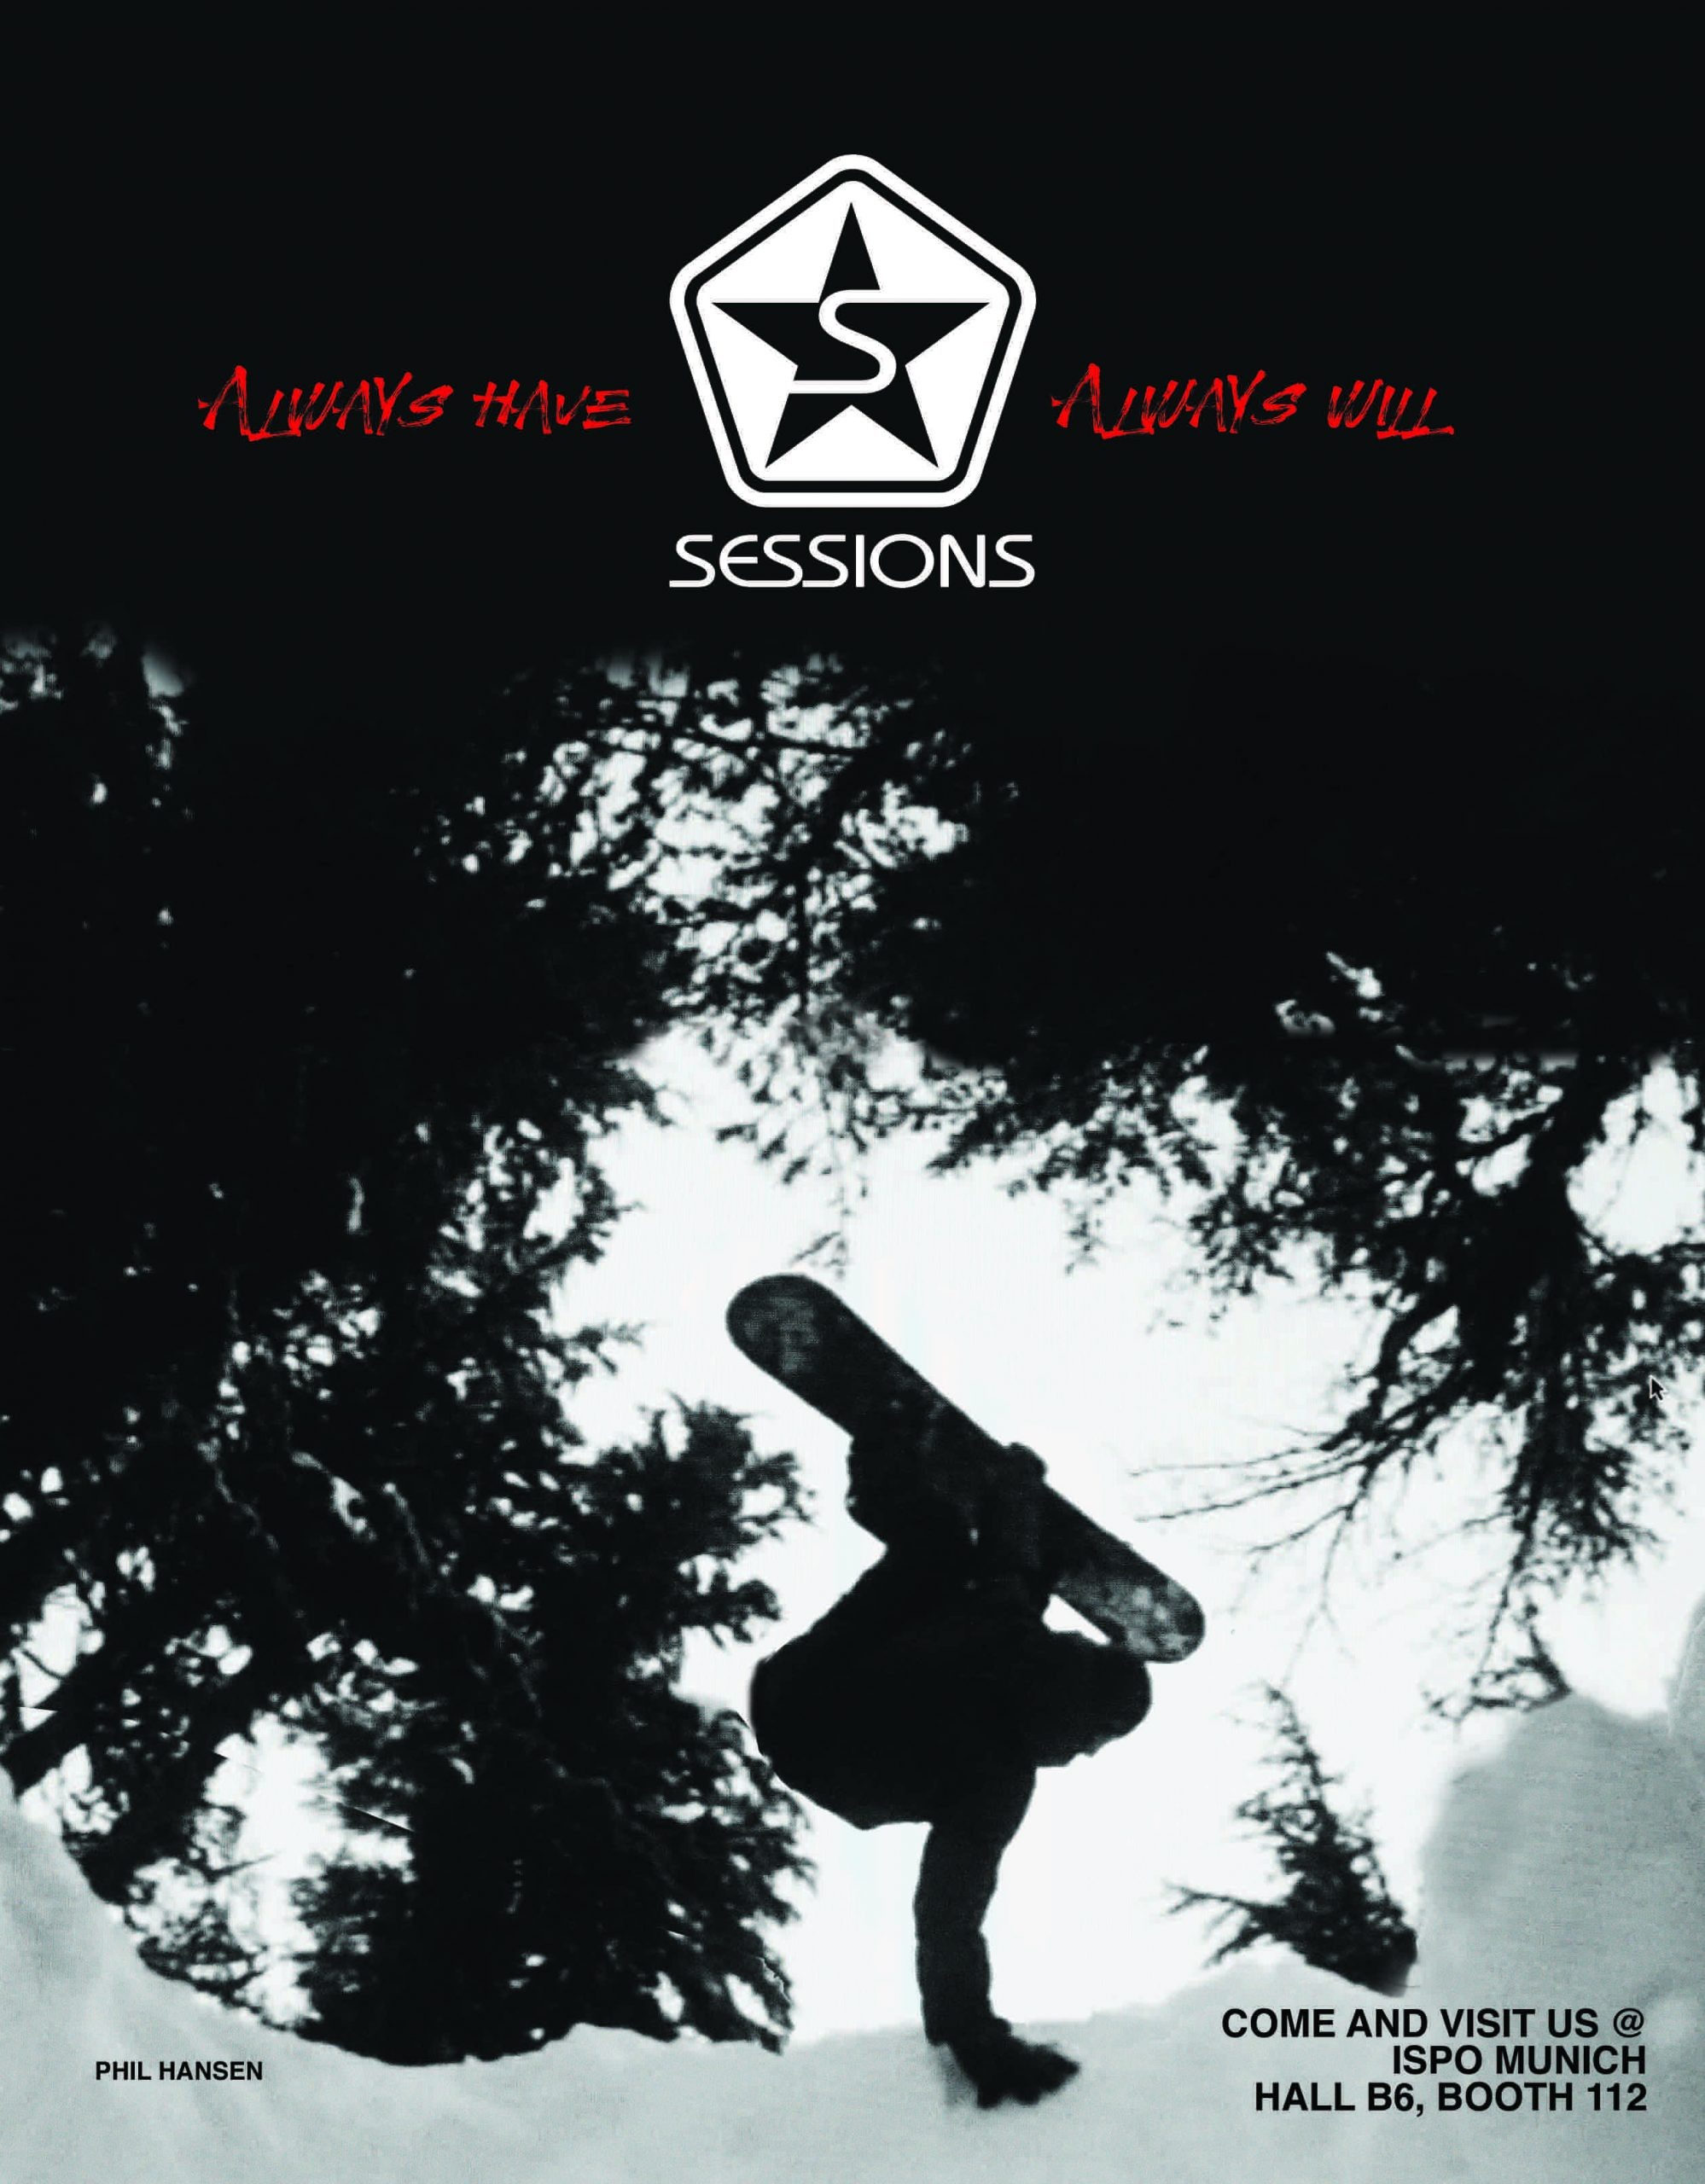 85 Sessions SNOW